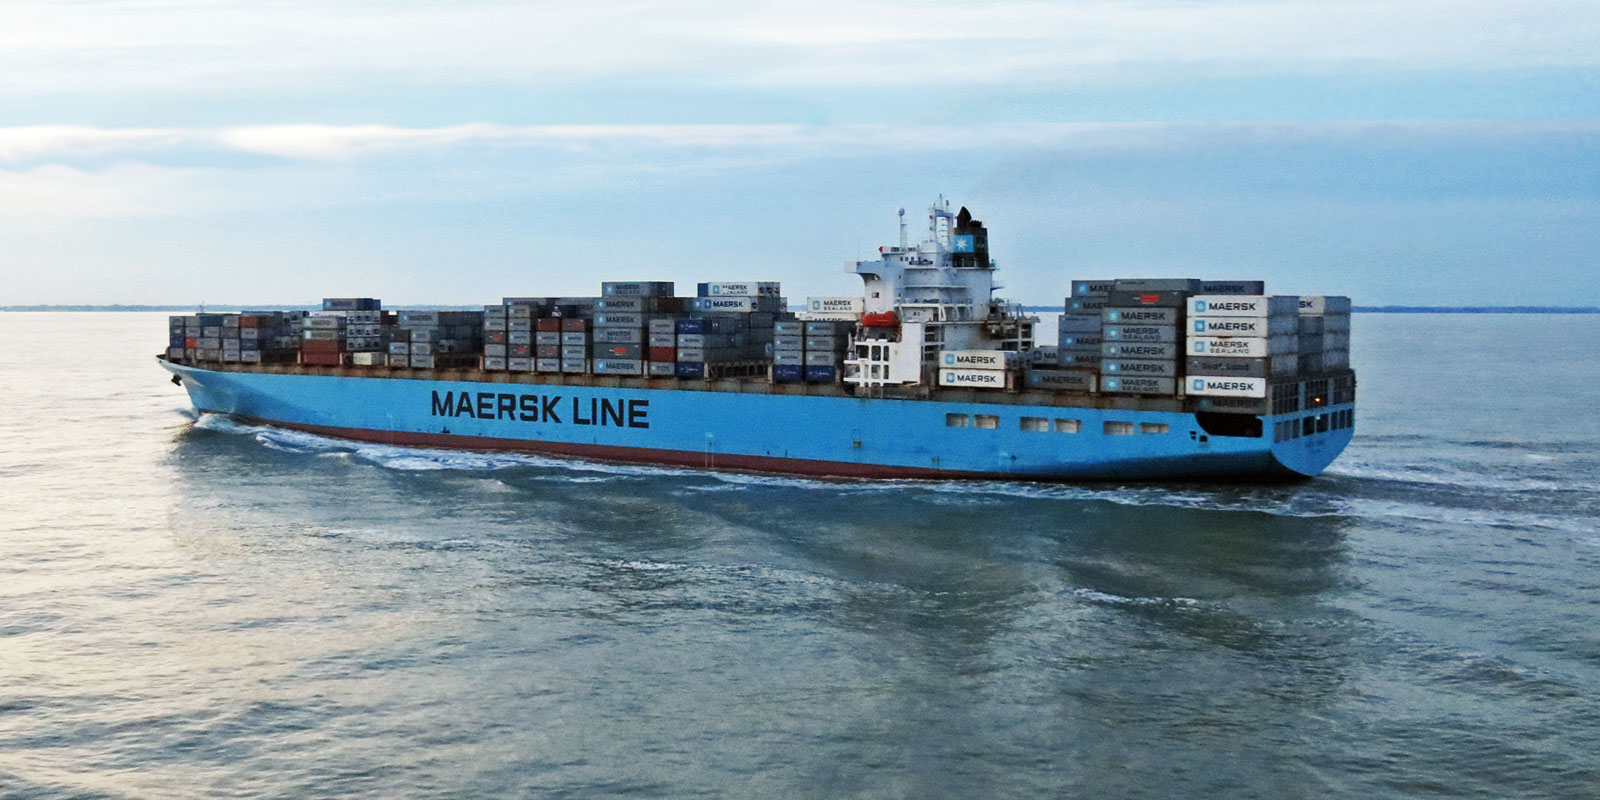 MAERSK - Photo: © Ian Boyle, 12th October 2013 - www.simplonpc.co.uk